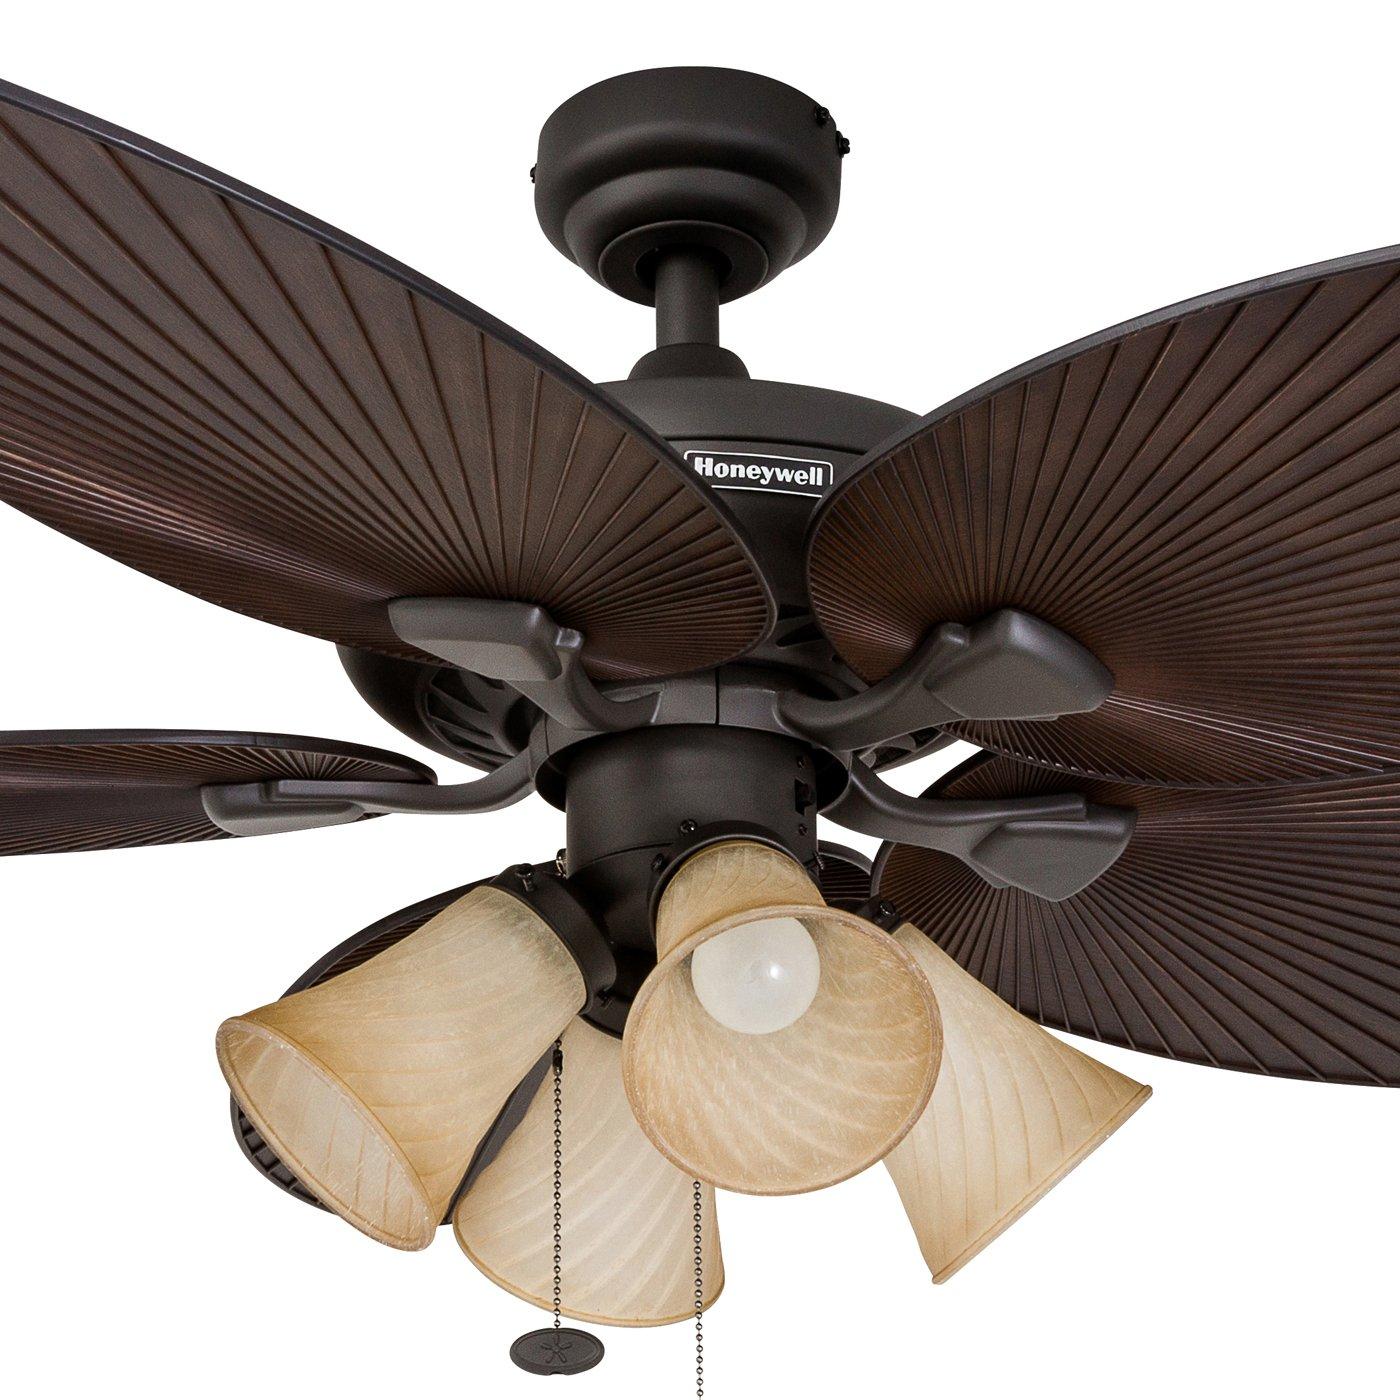 100 palm blade ceiling fan with light elegant home decorato